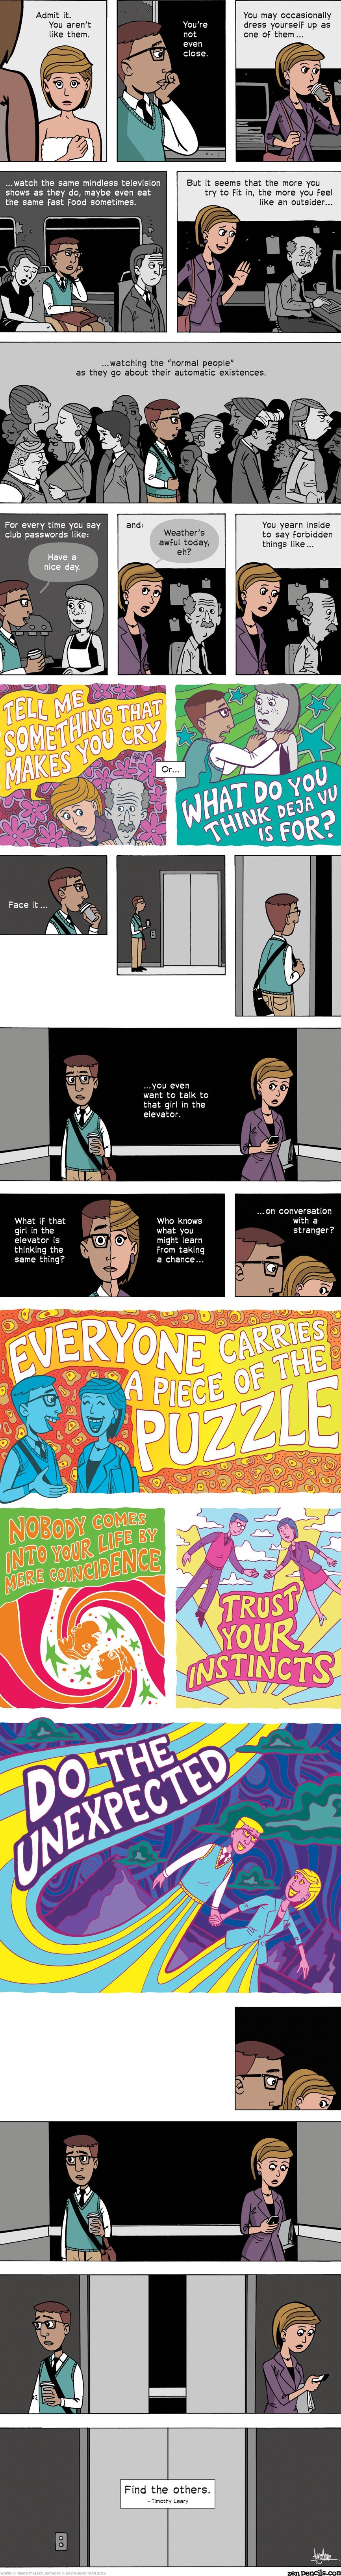 timothy-leary-psychedelic-zen-pencils